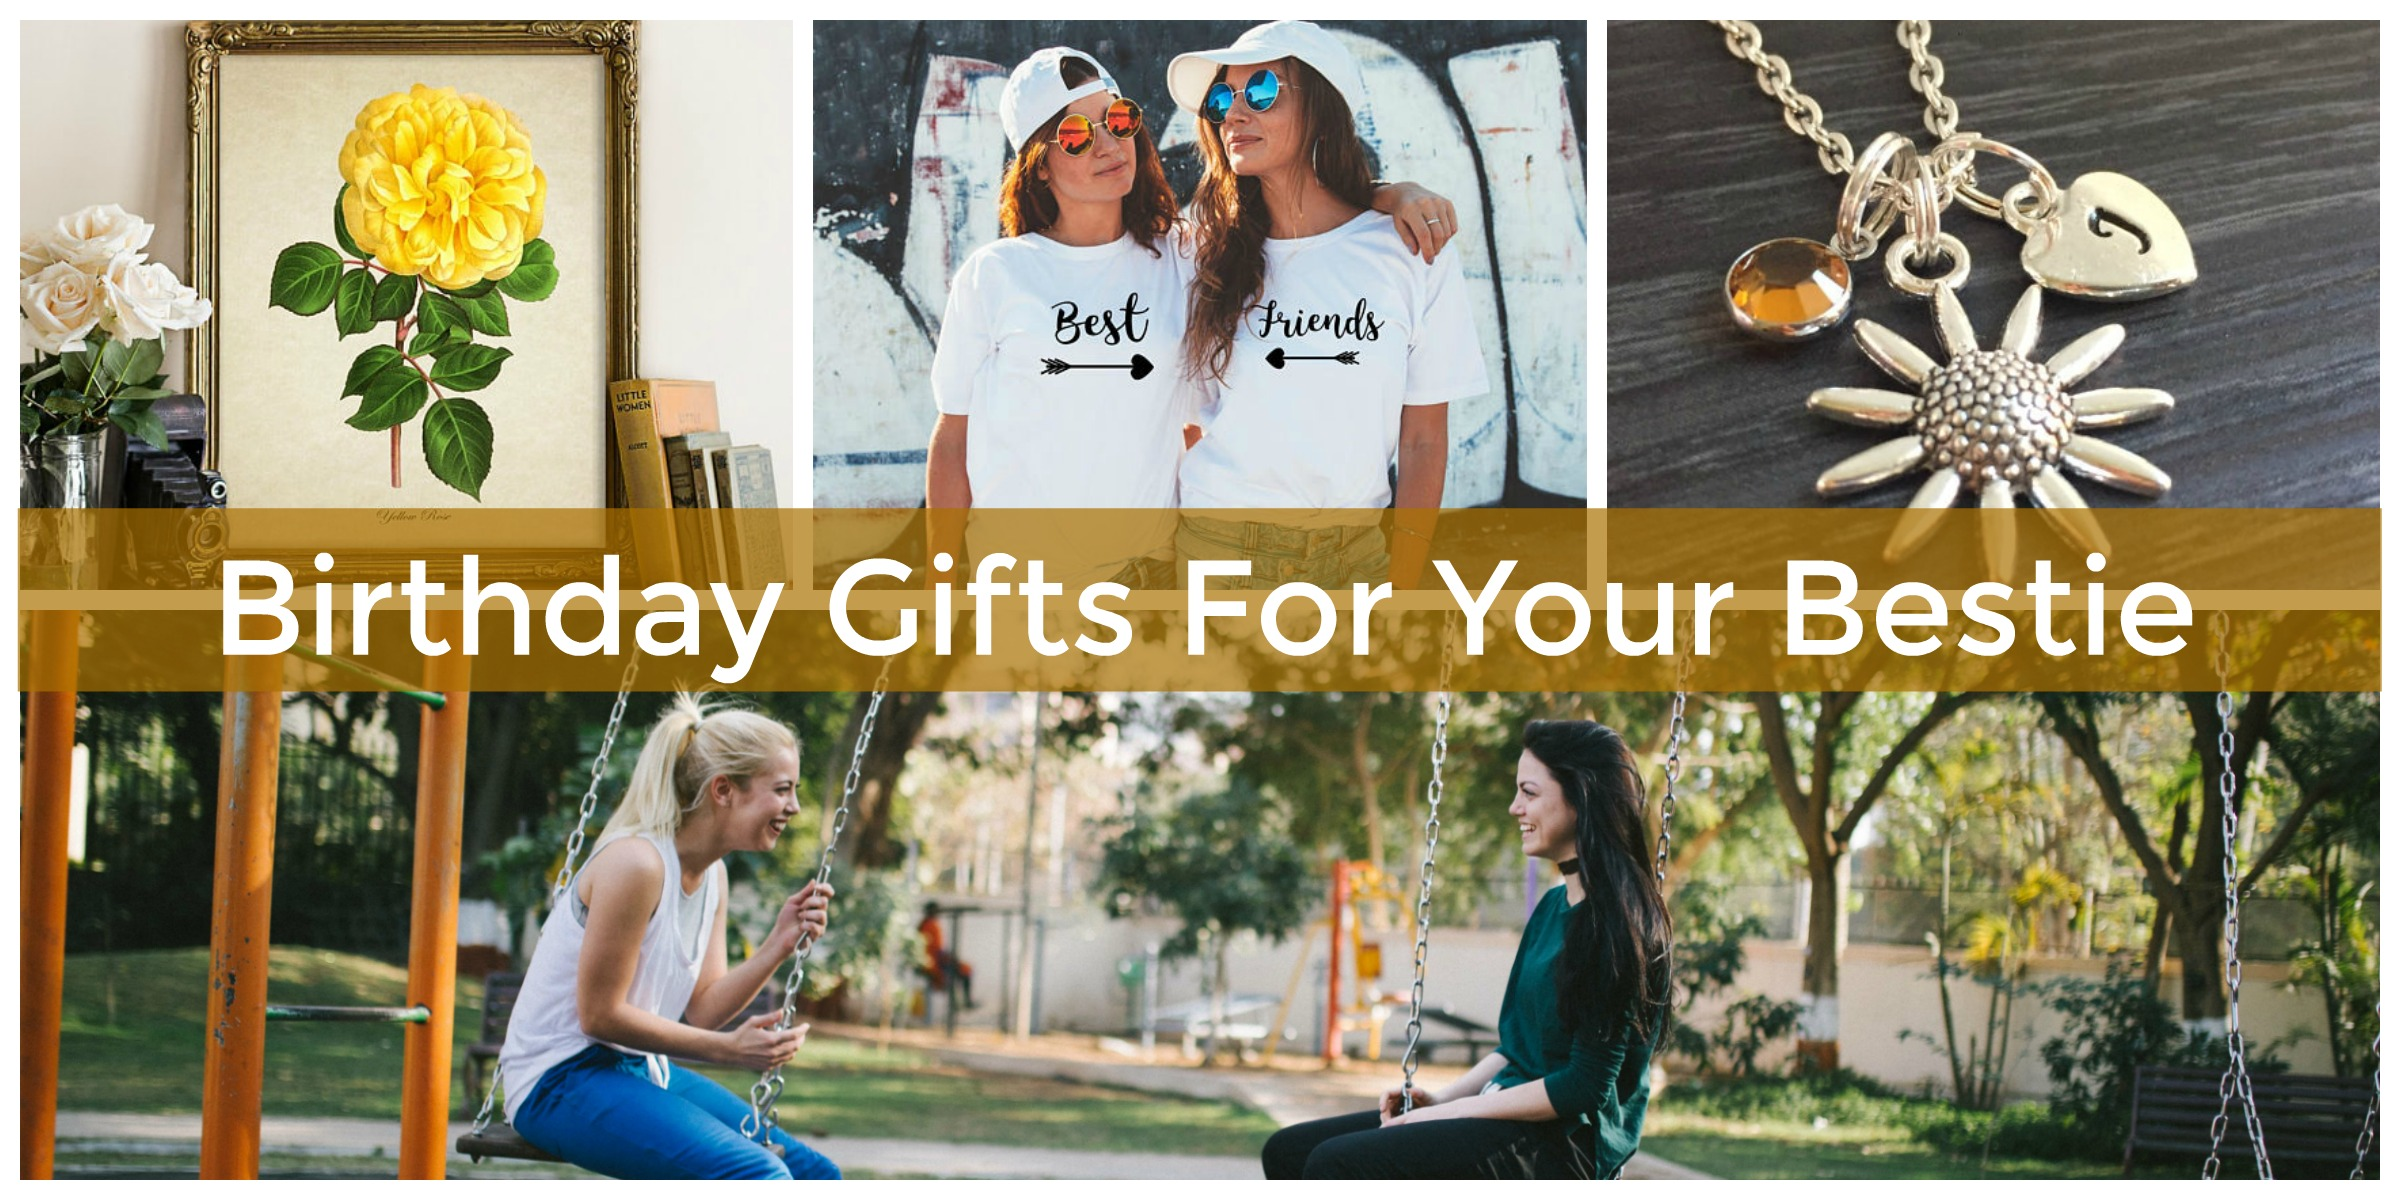 bday gift ideas for